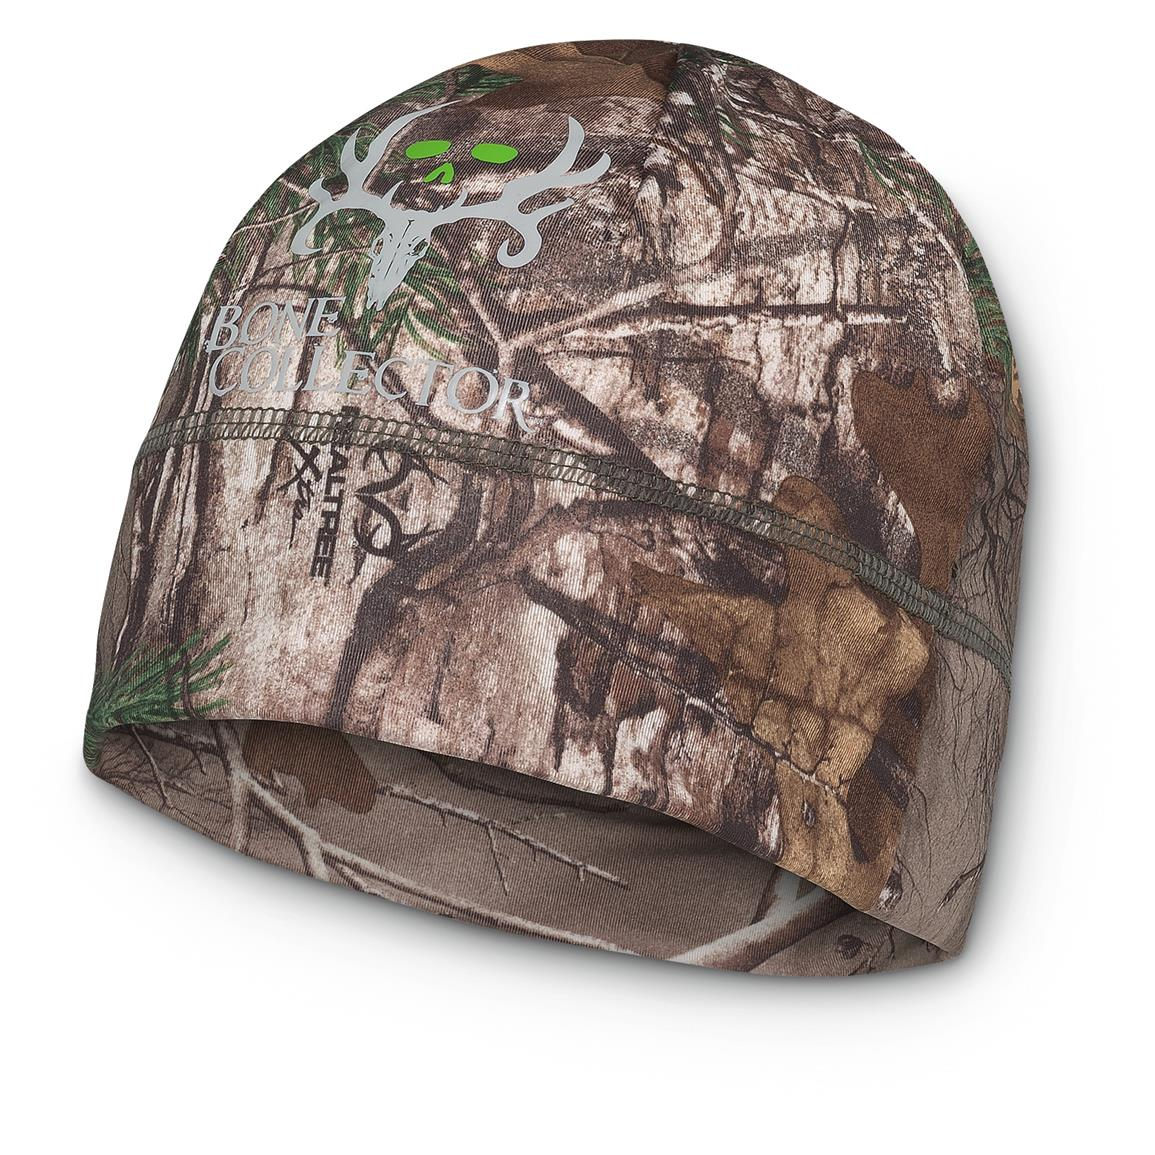 Bone Collector Outfitter Hunting Beanie Hat, Realtree Xtra